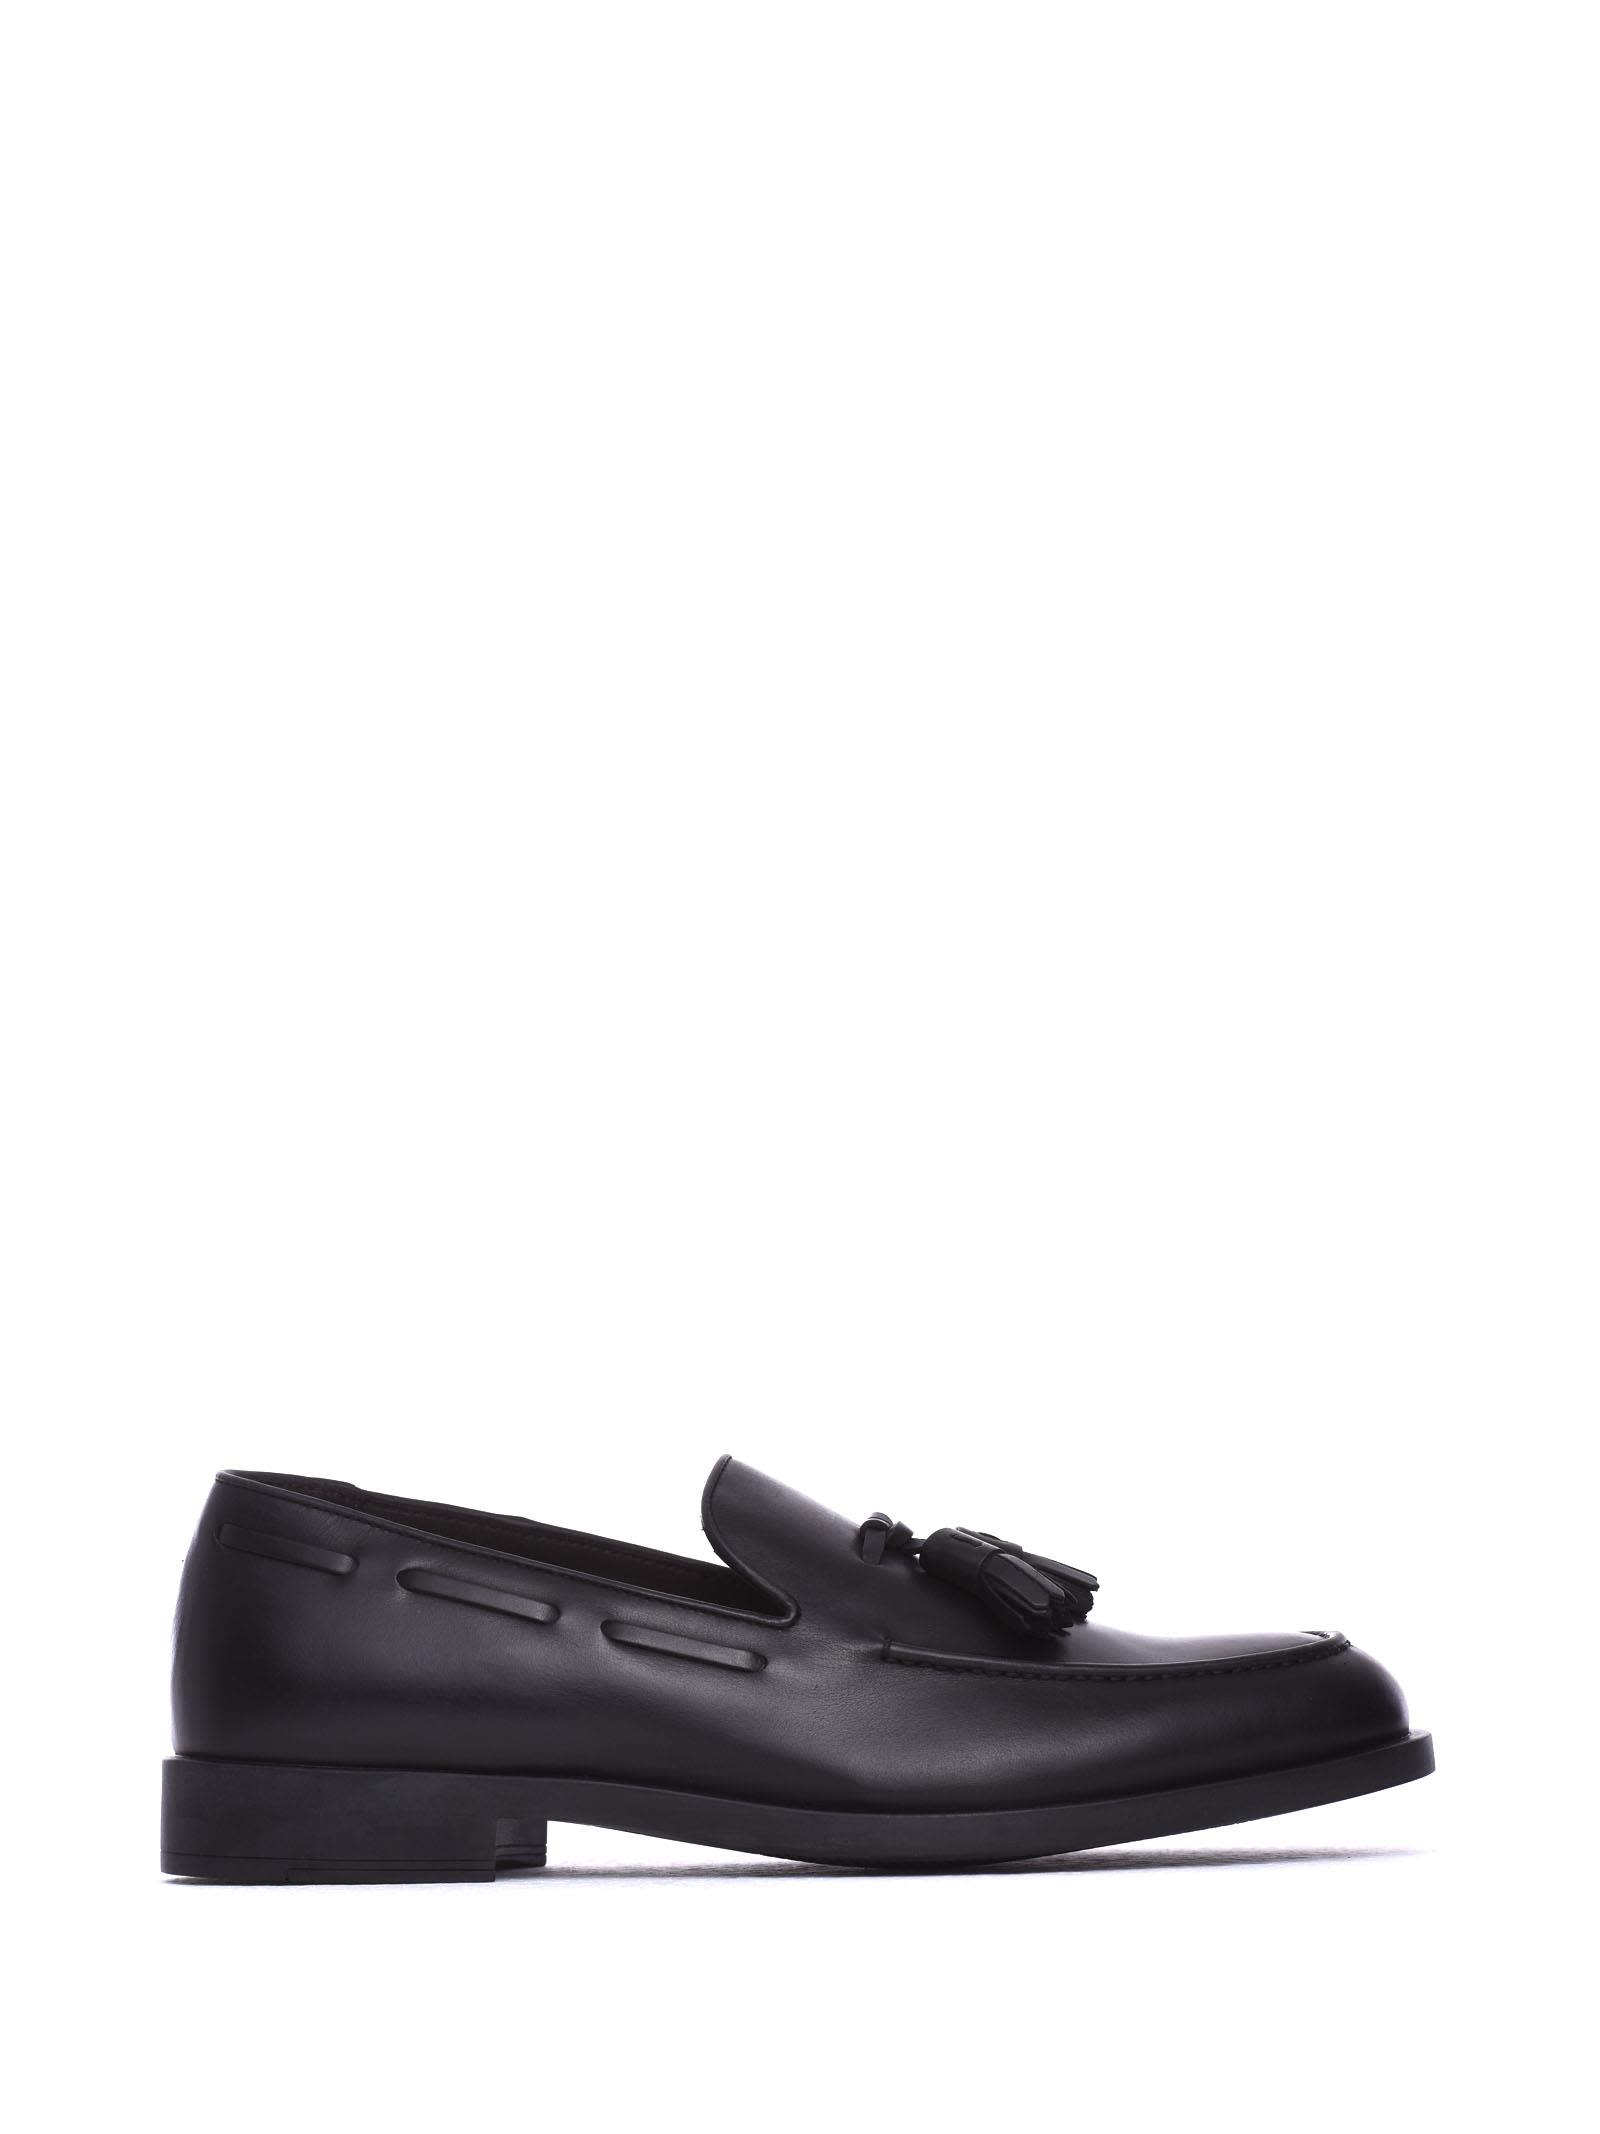 FRATELLI ROSSETTI ONE Black Leather Loafer in Nero